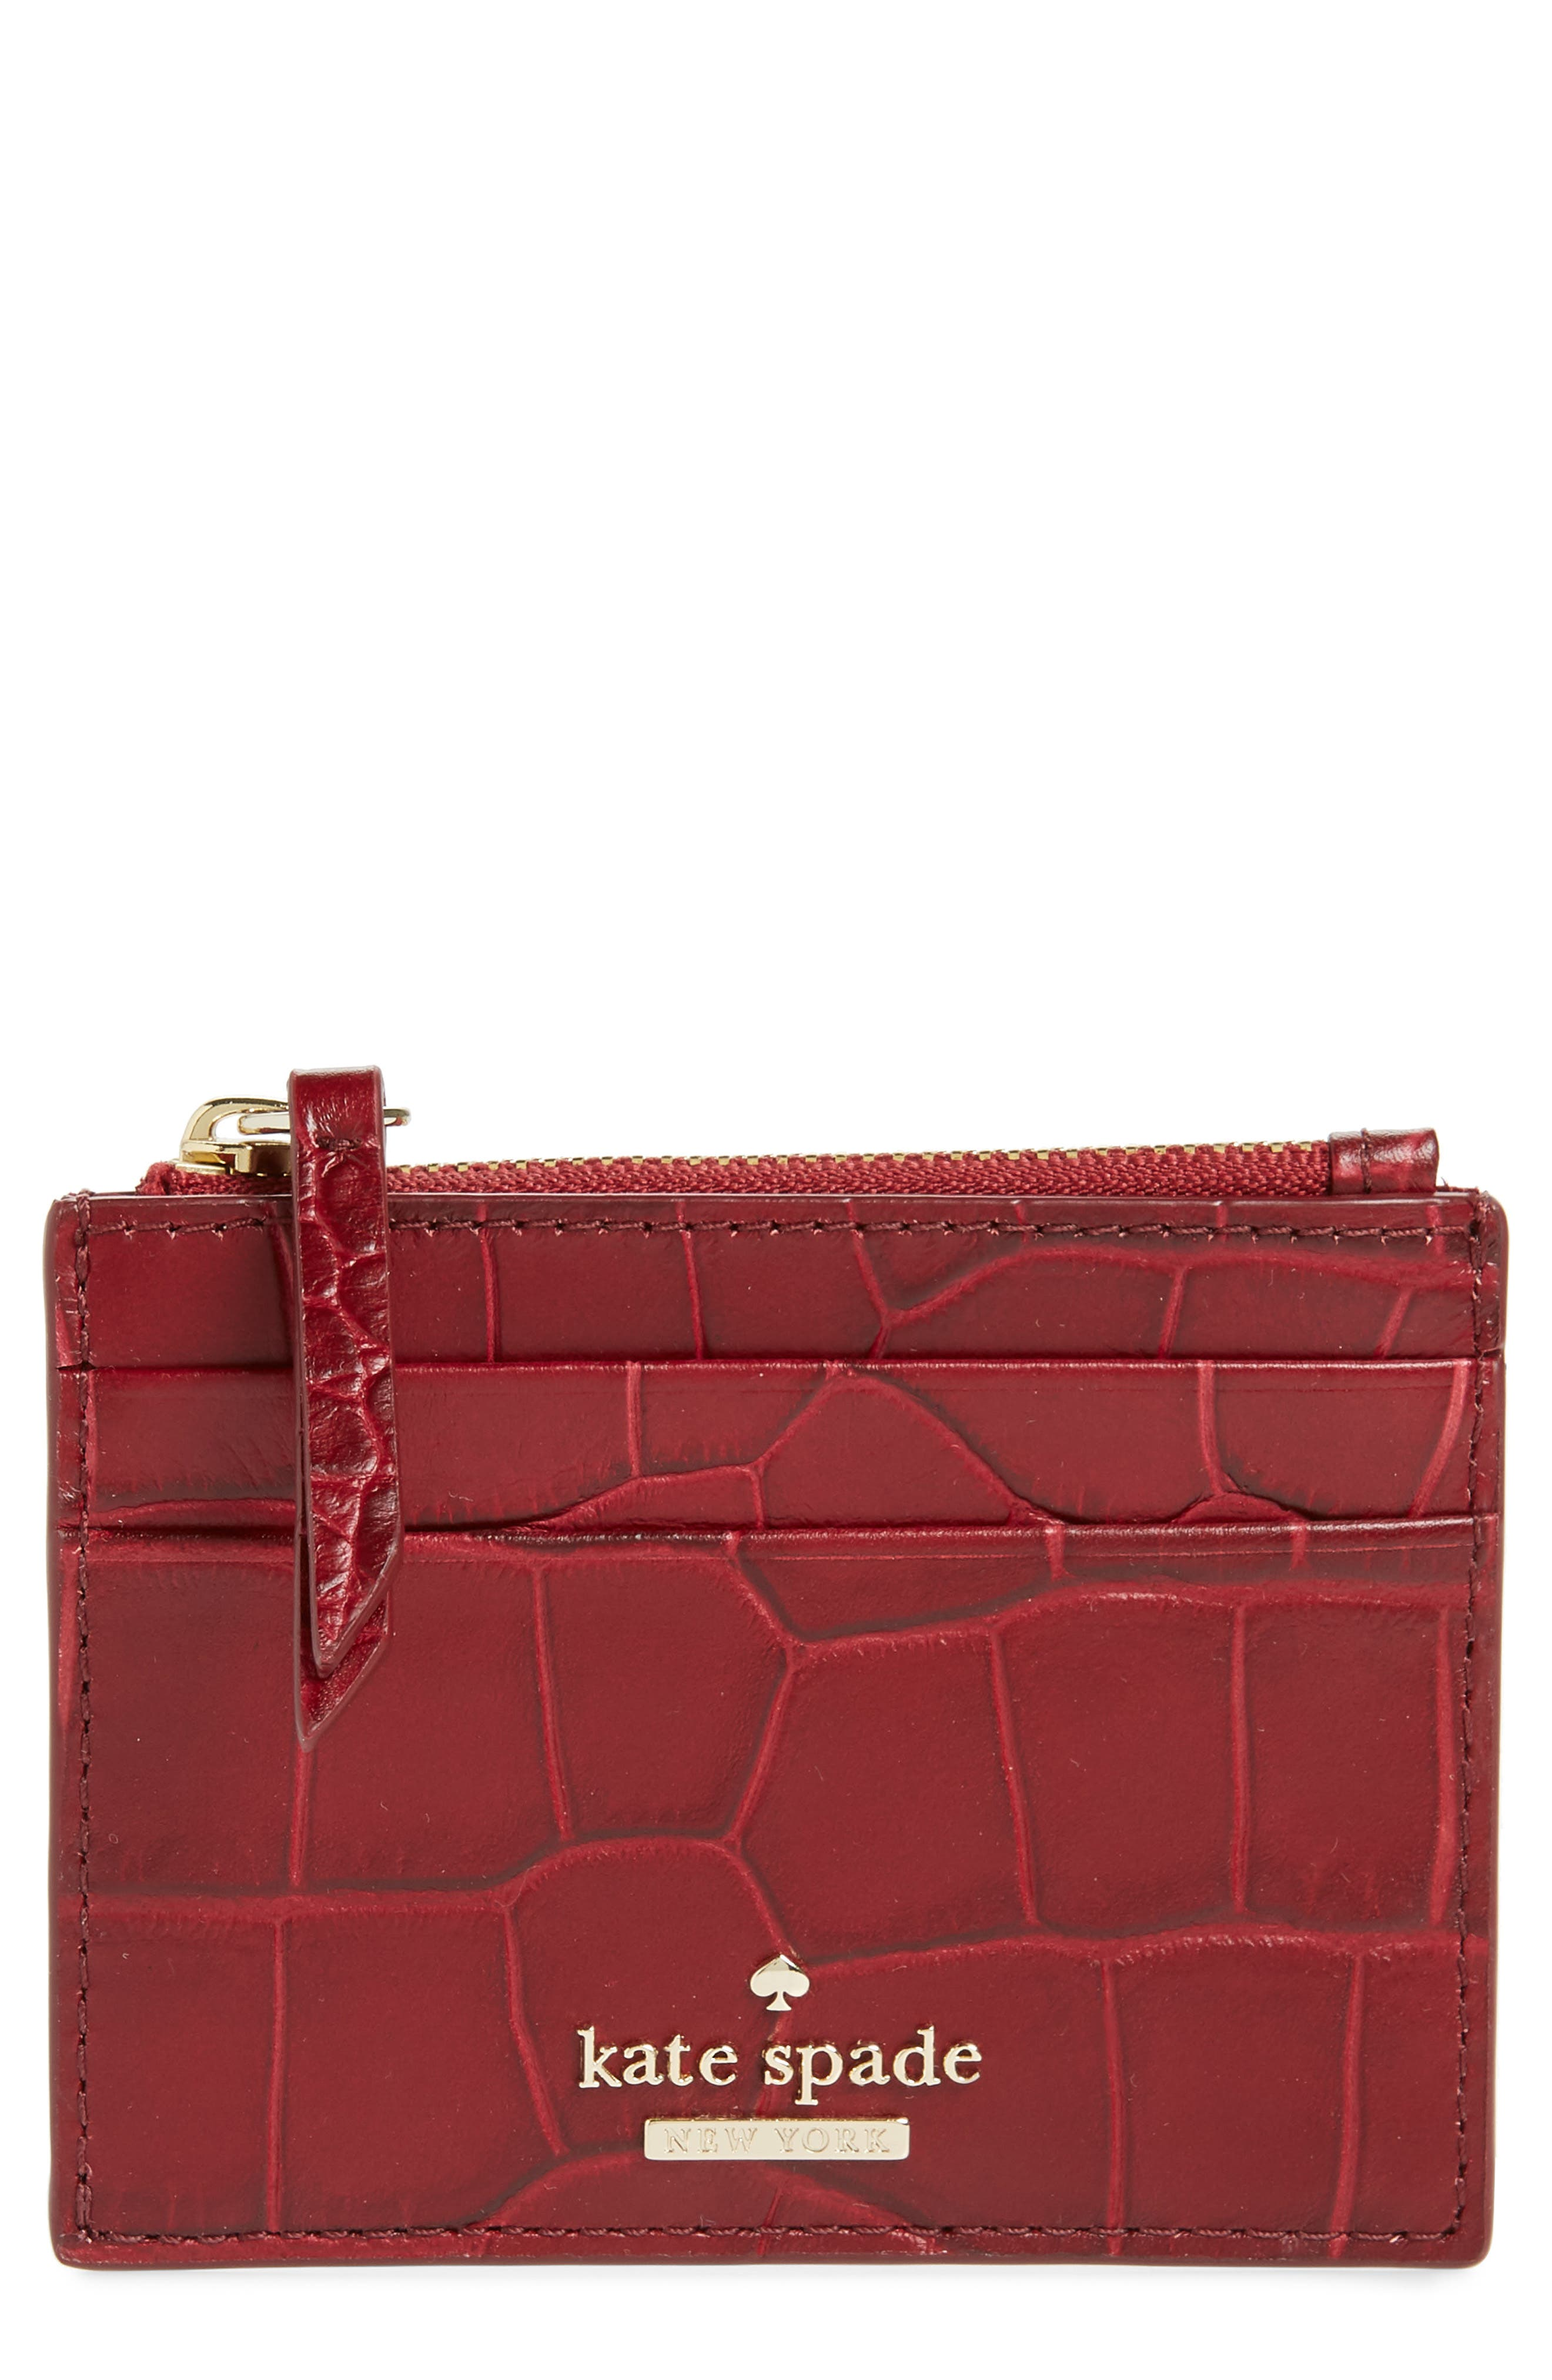 KATE SPADE NEW YORK,                             murray street - lalena croc embossed leather card case,                             Main thumbnail 1, color,                             600